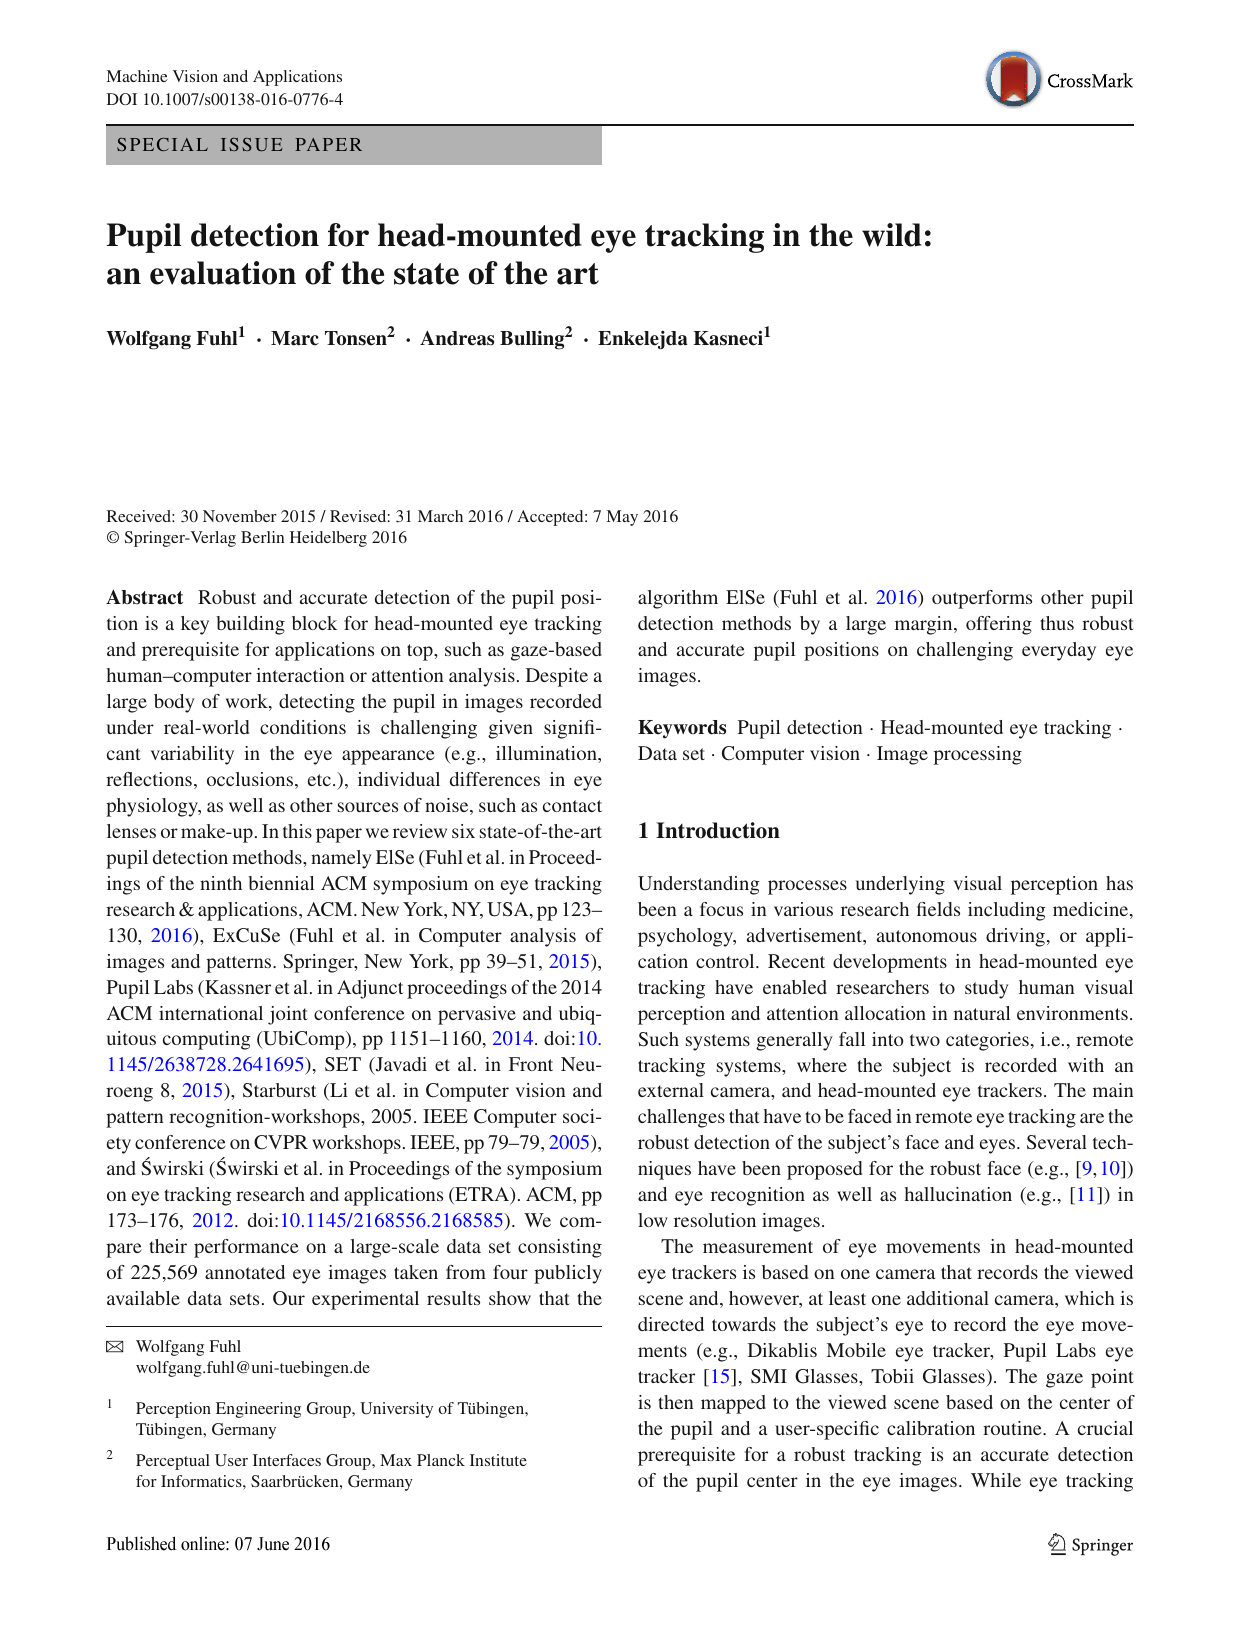 Pupil detection for head-mounted eye tracking in the wild: an evaluation of the state of the art